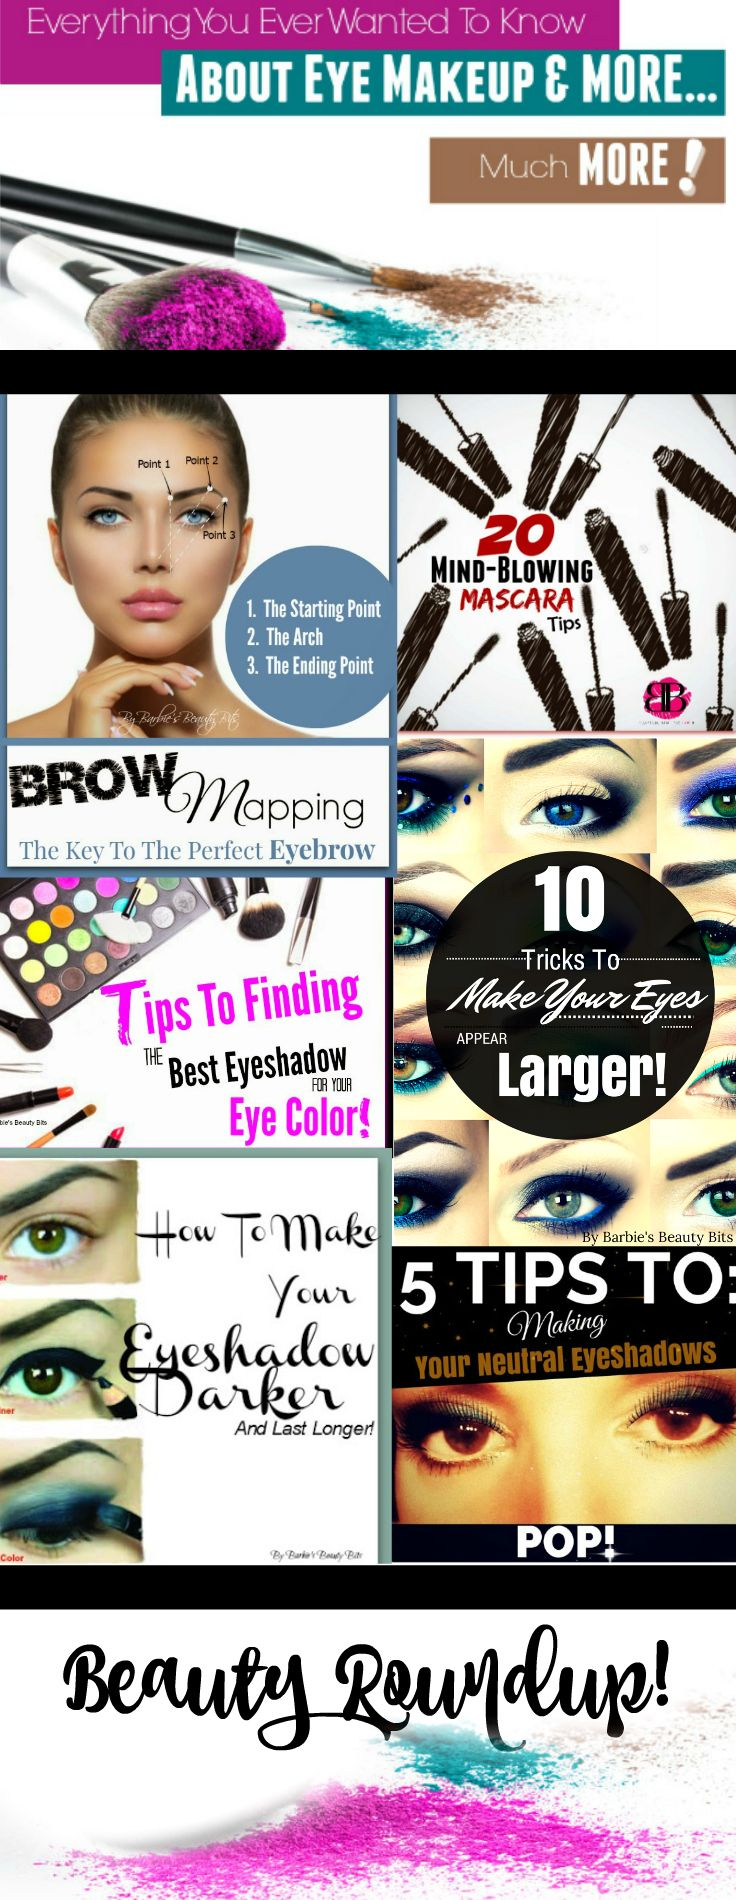 Everything you wanted to know about cosmetics